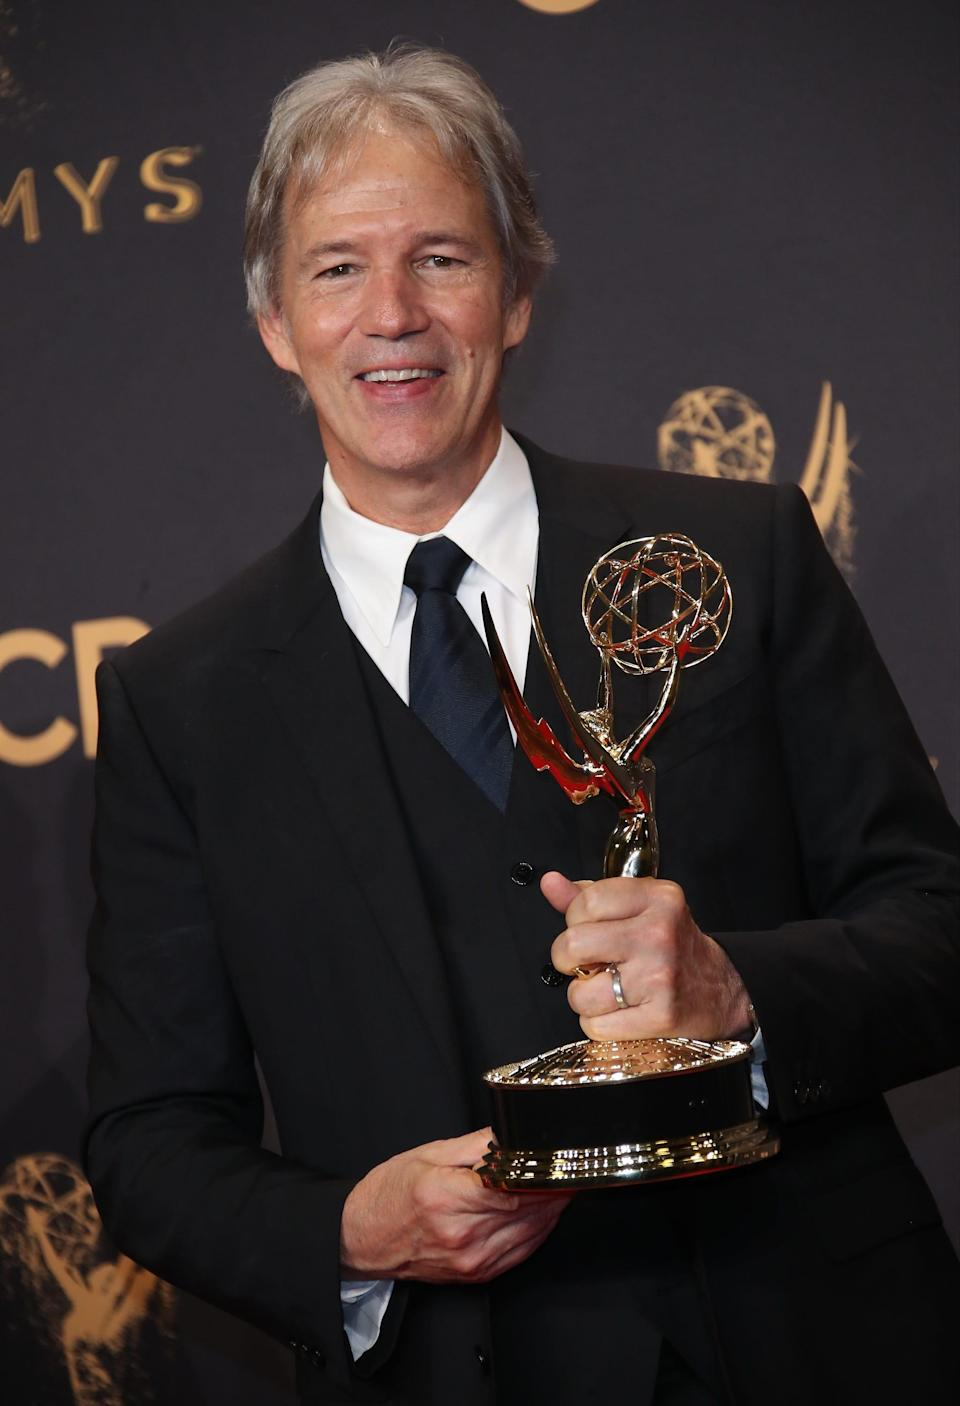 """David E. Kelley poses with his Emmy Award for outstanding limited series for """"Big Little Lies"""" in 2017."""